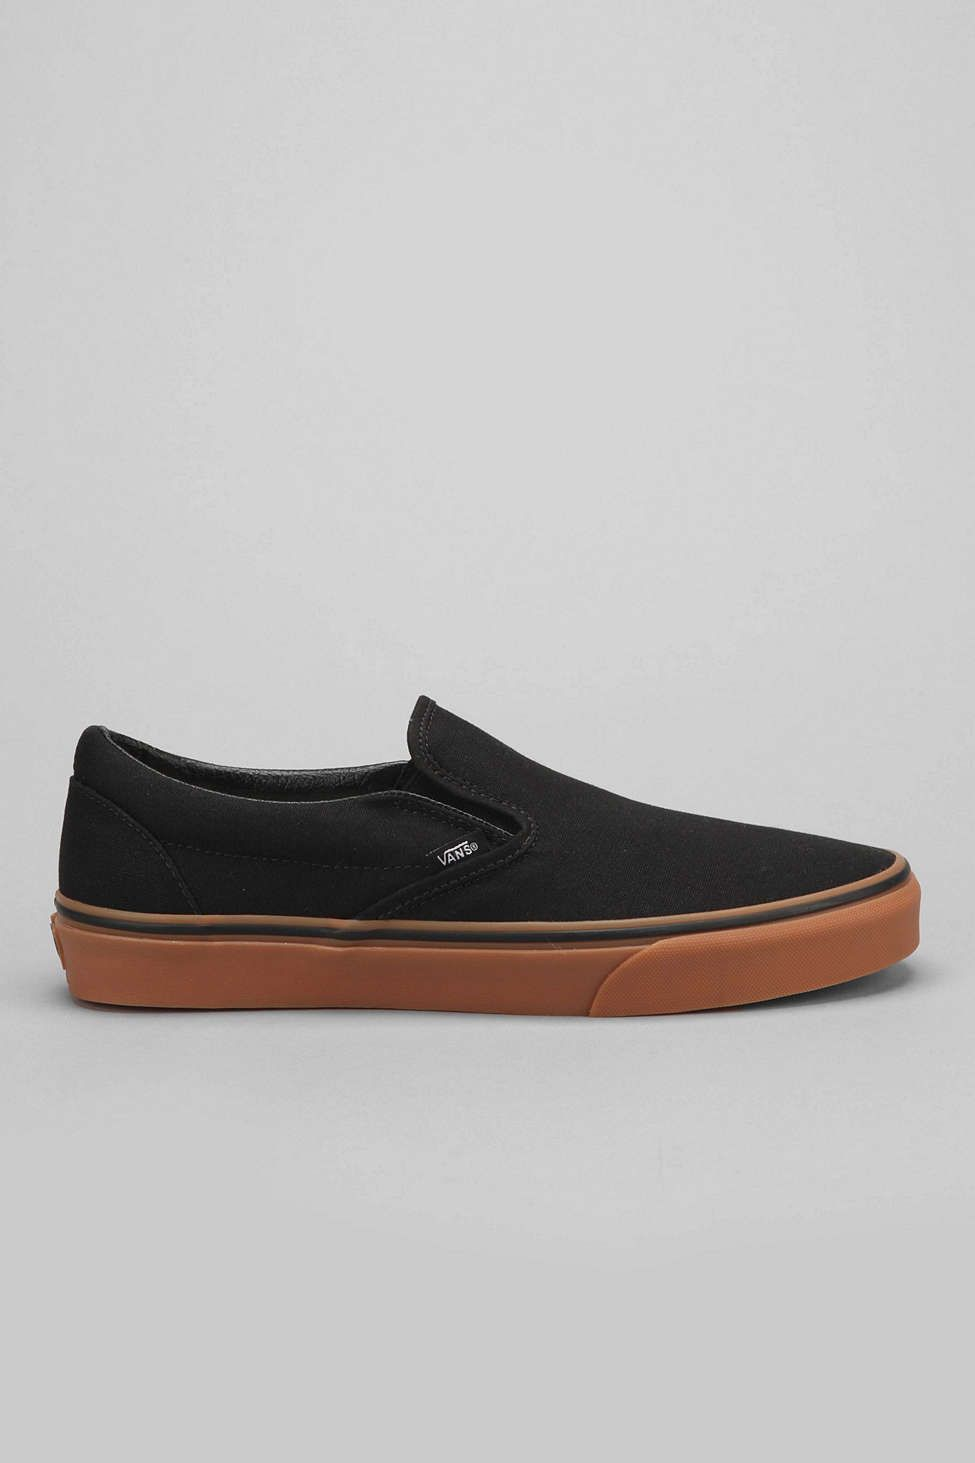 #Vans Classic Charcoal White Canvas Mens Slip-On Trainers Shoes YITf7diX